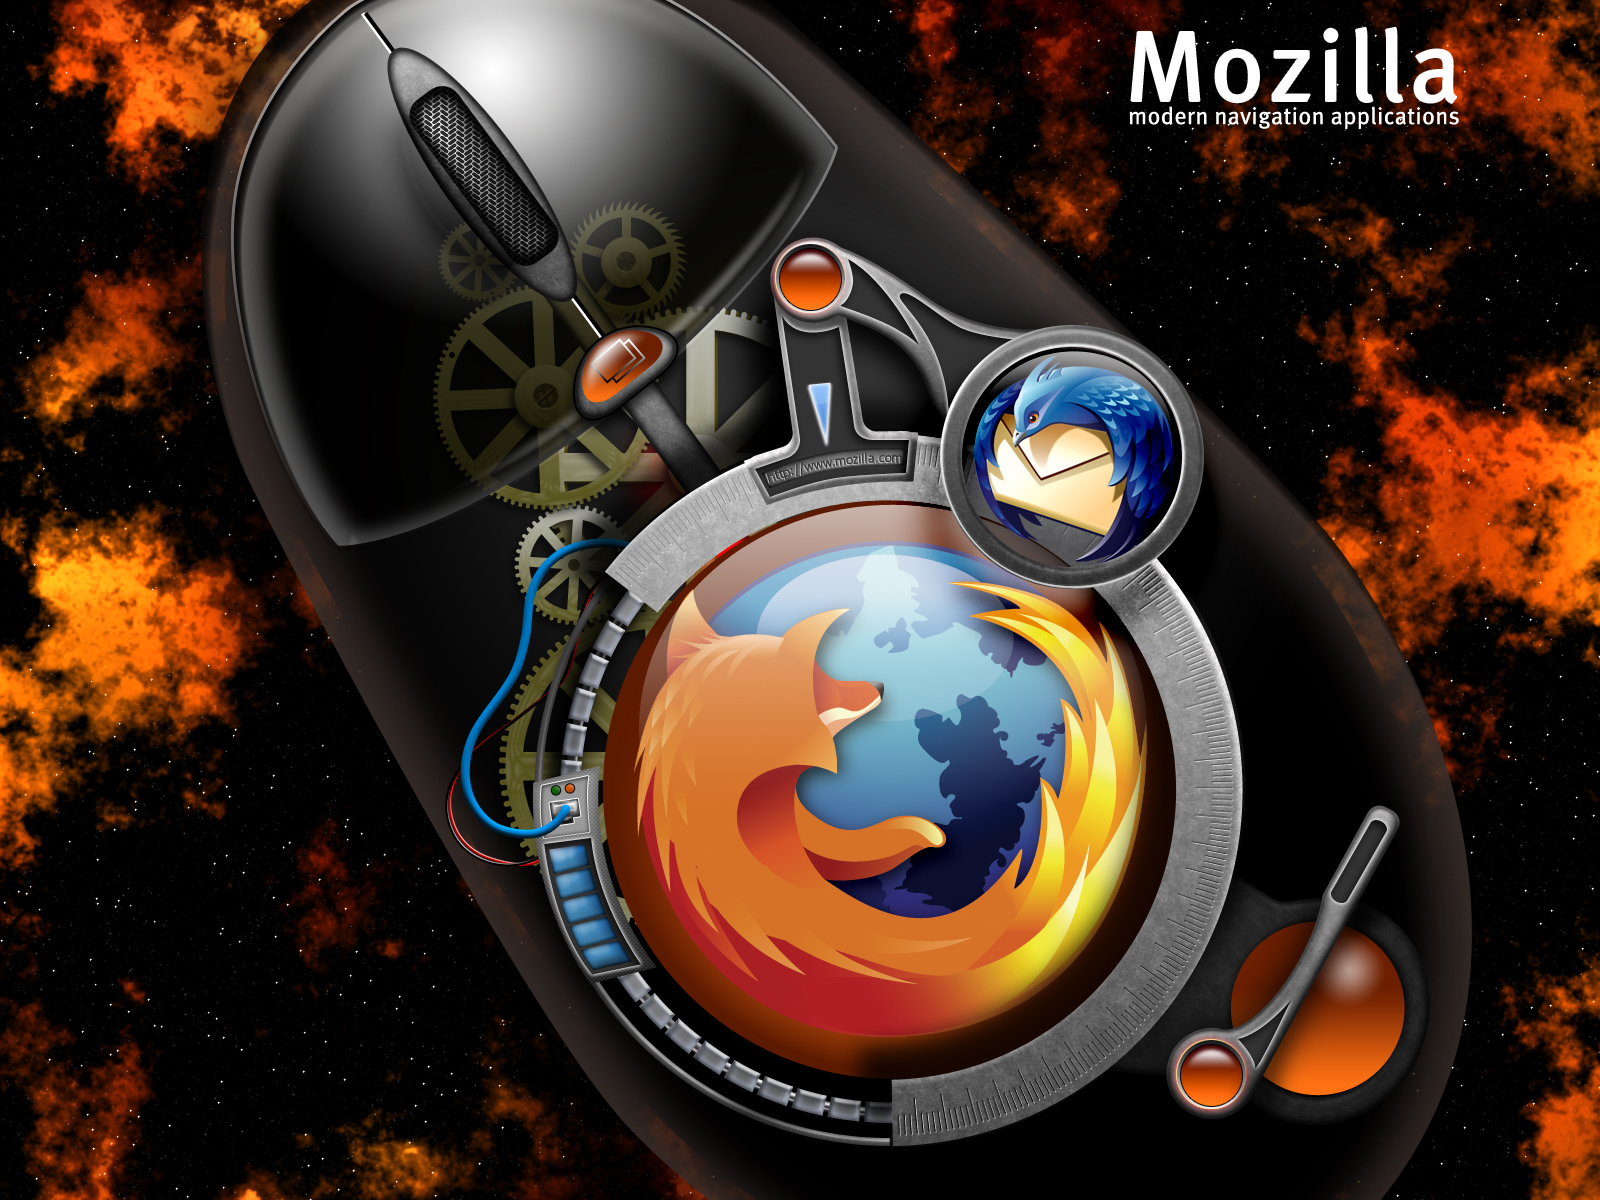 Download free HD Cool 3D Mozilla Firefox Wallpaper, image